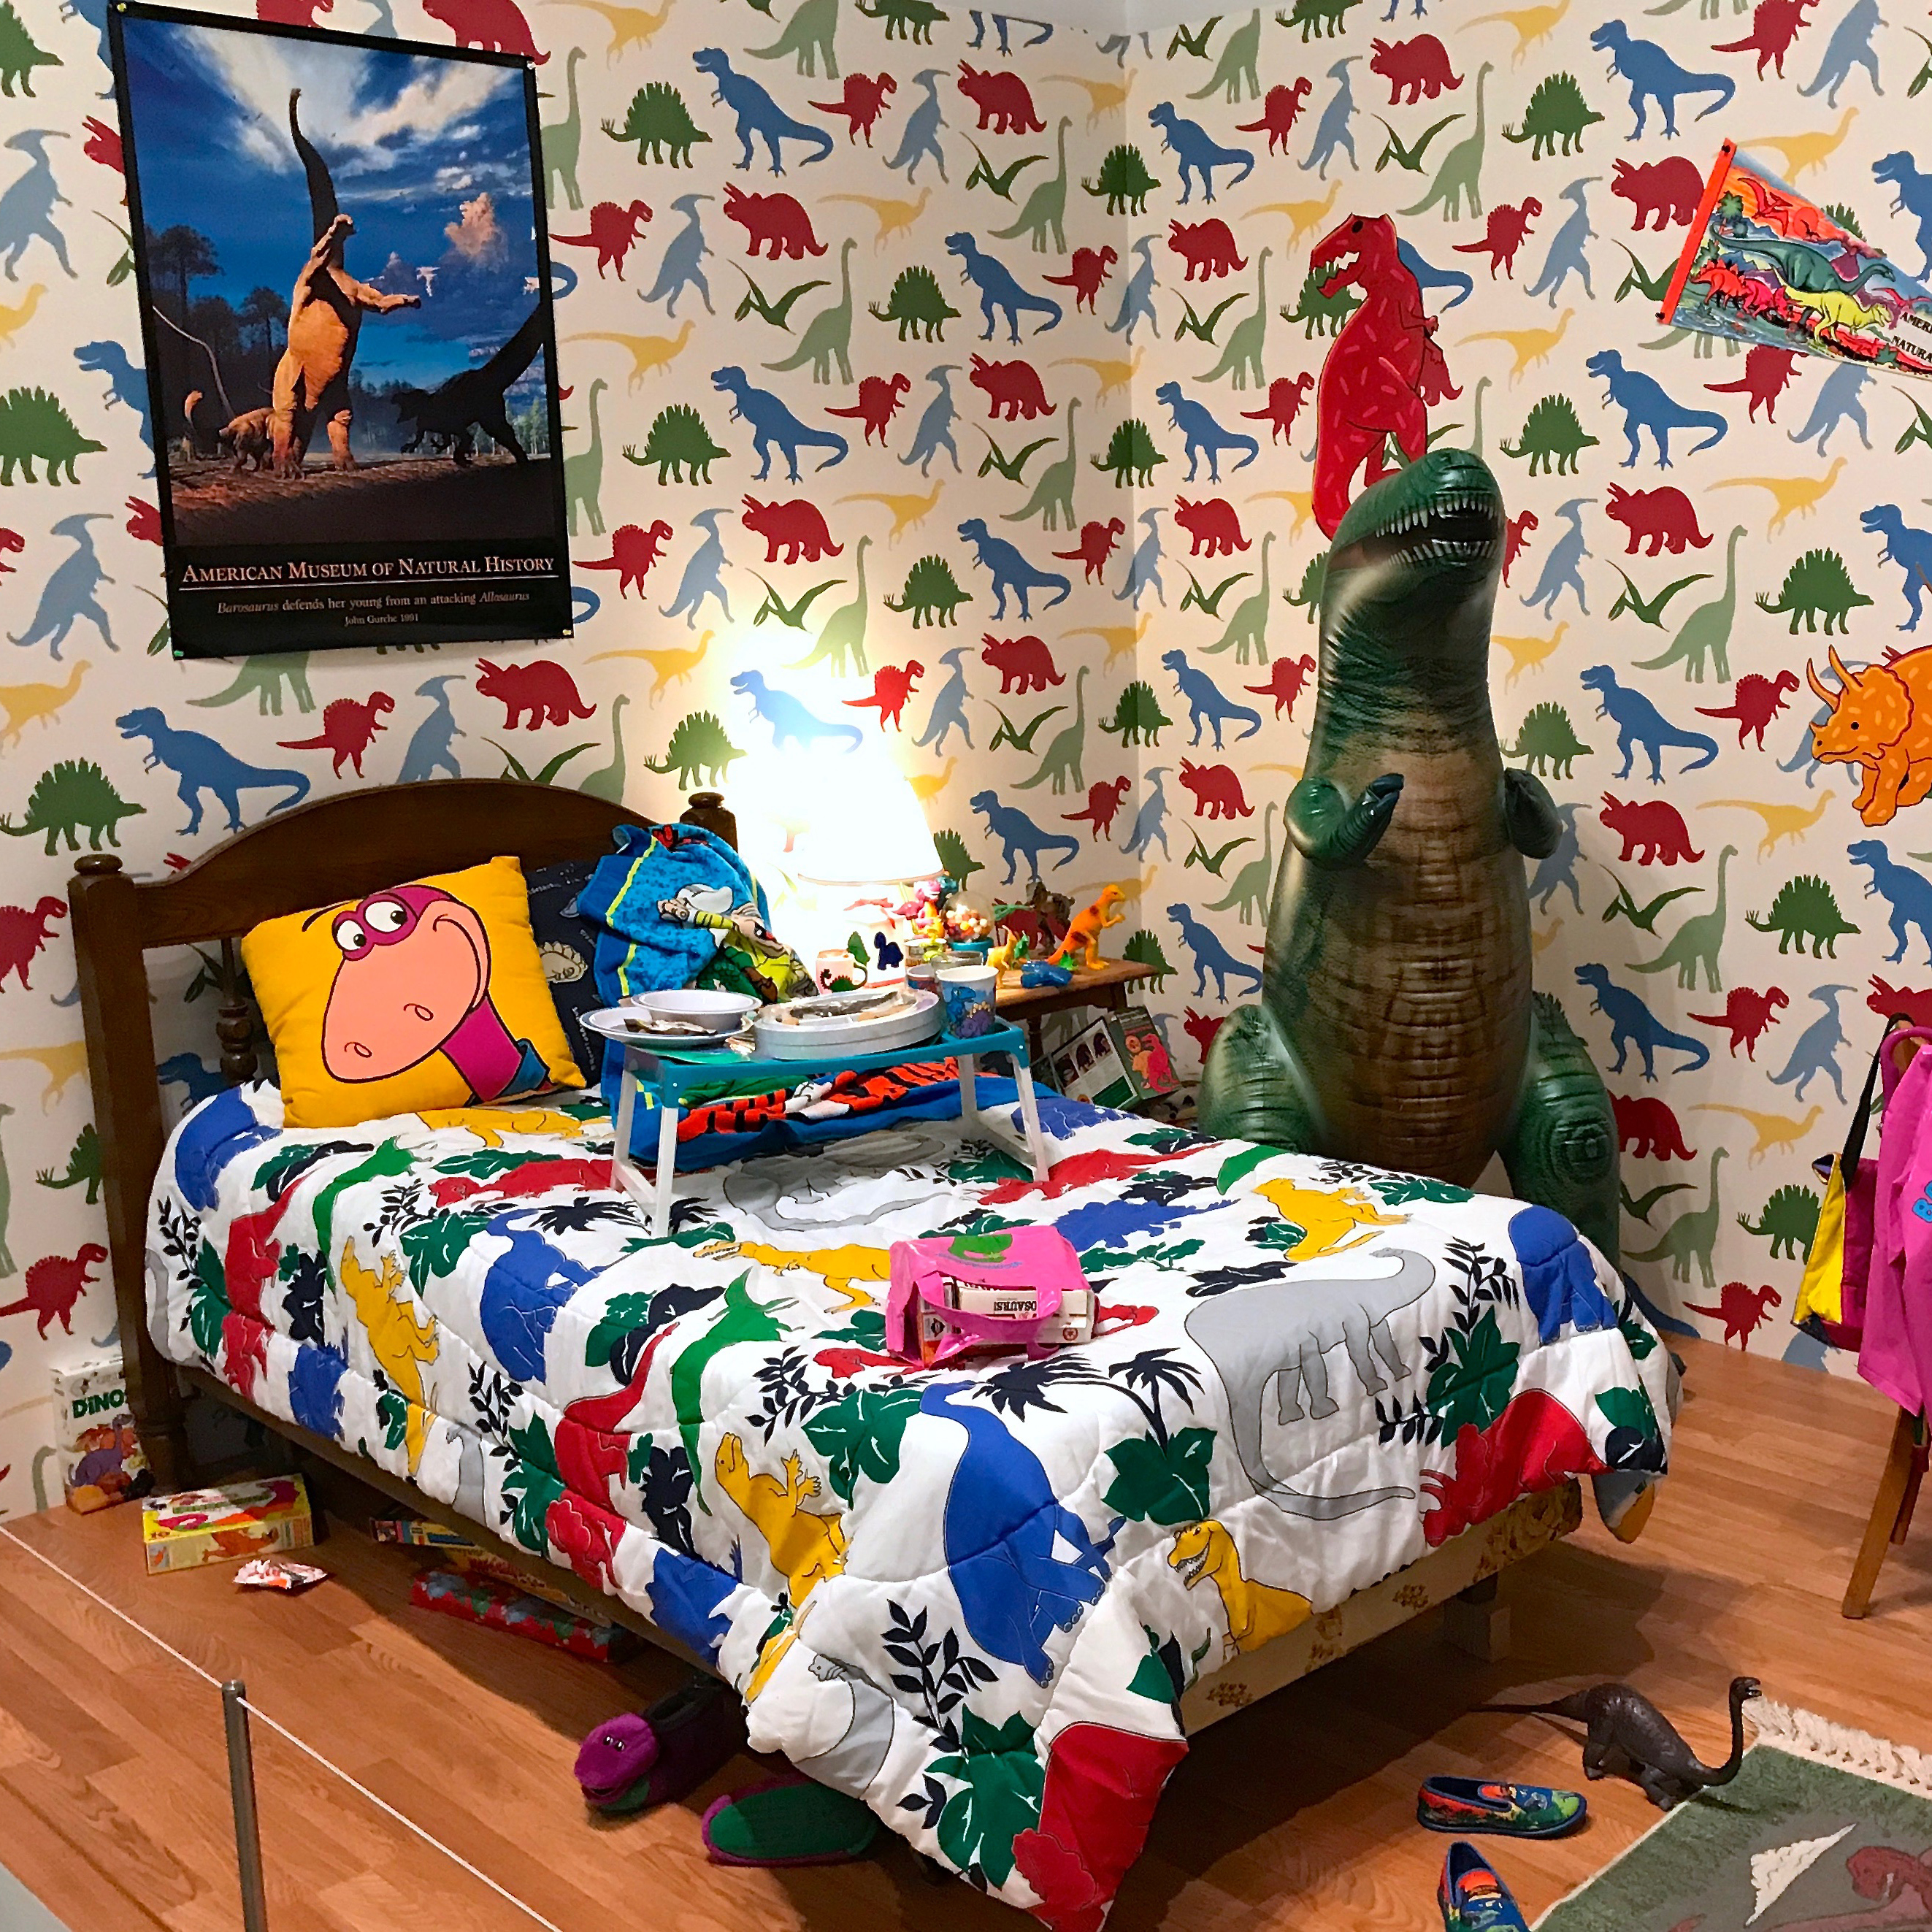 Mark Dion, When Dinosaurs Ruled the Earth (Toys 'R' U.S.), 1994, Mixed media installation, Dimensions variable.